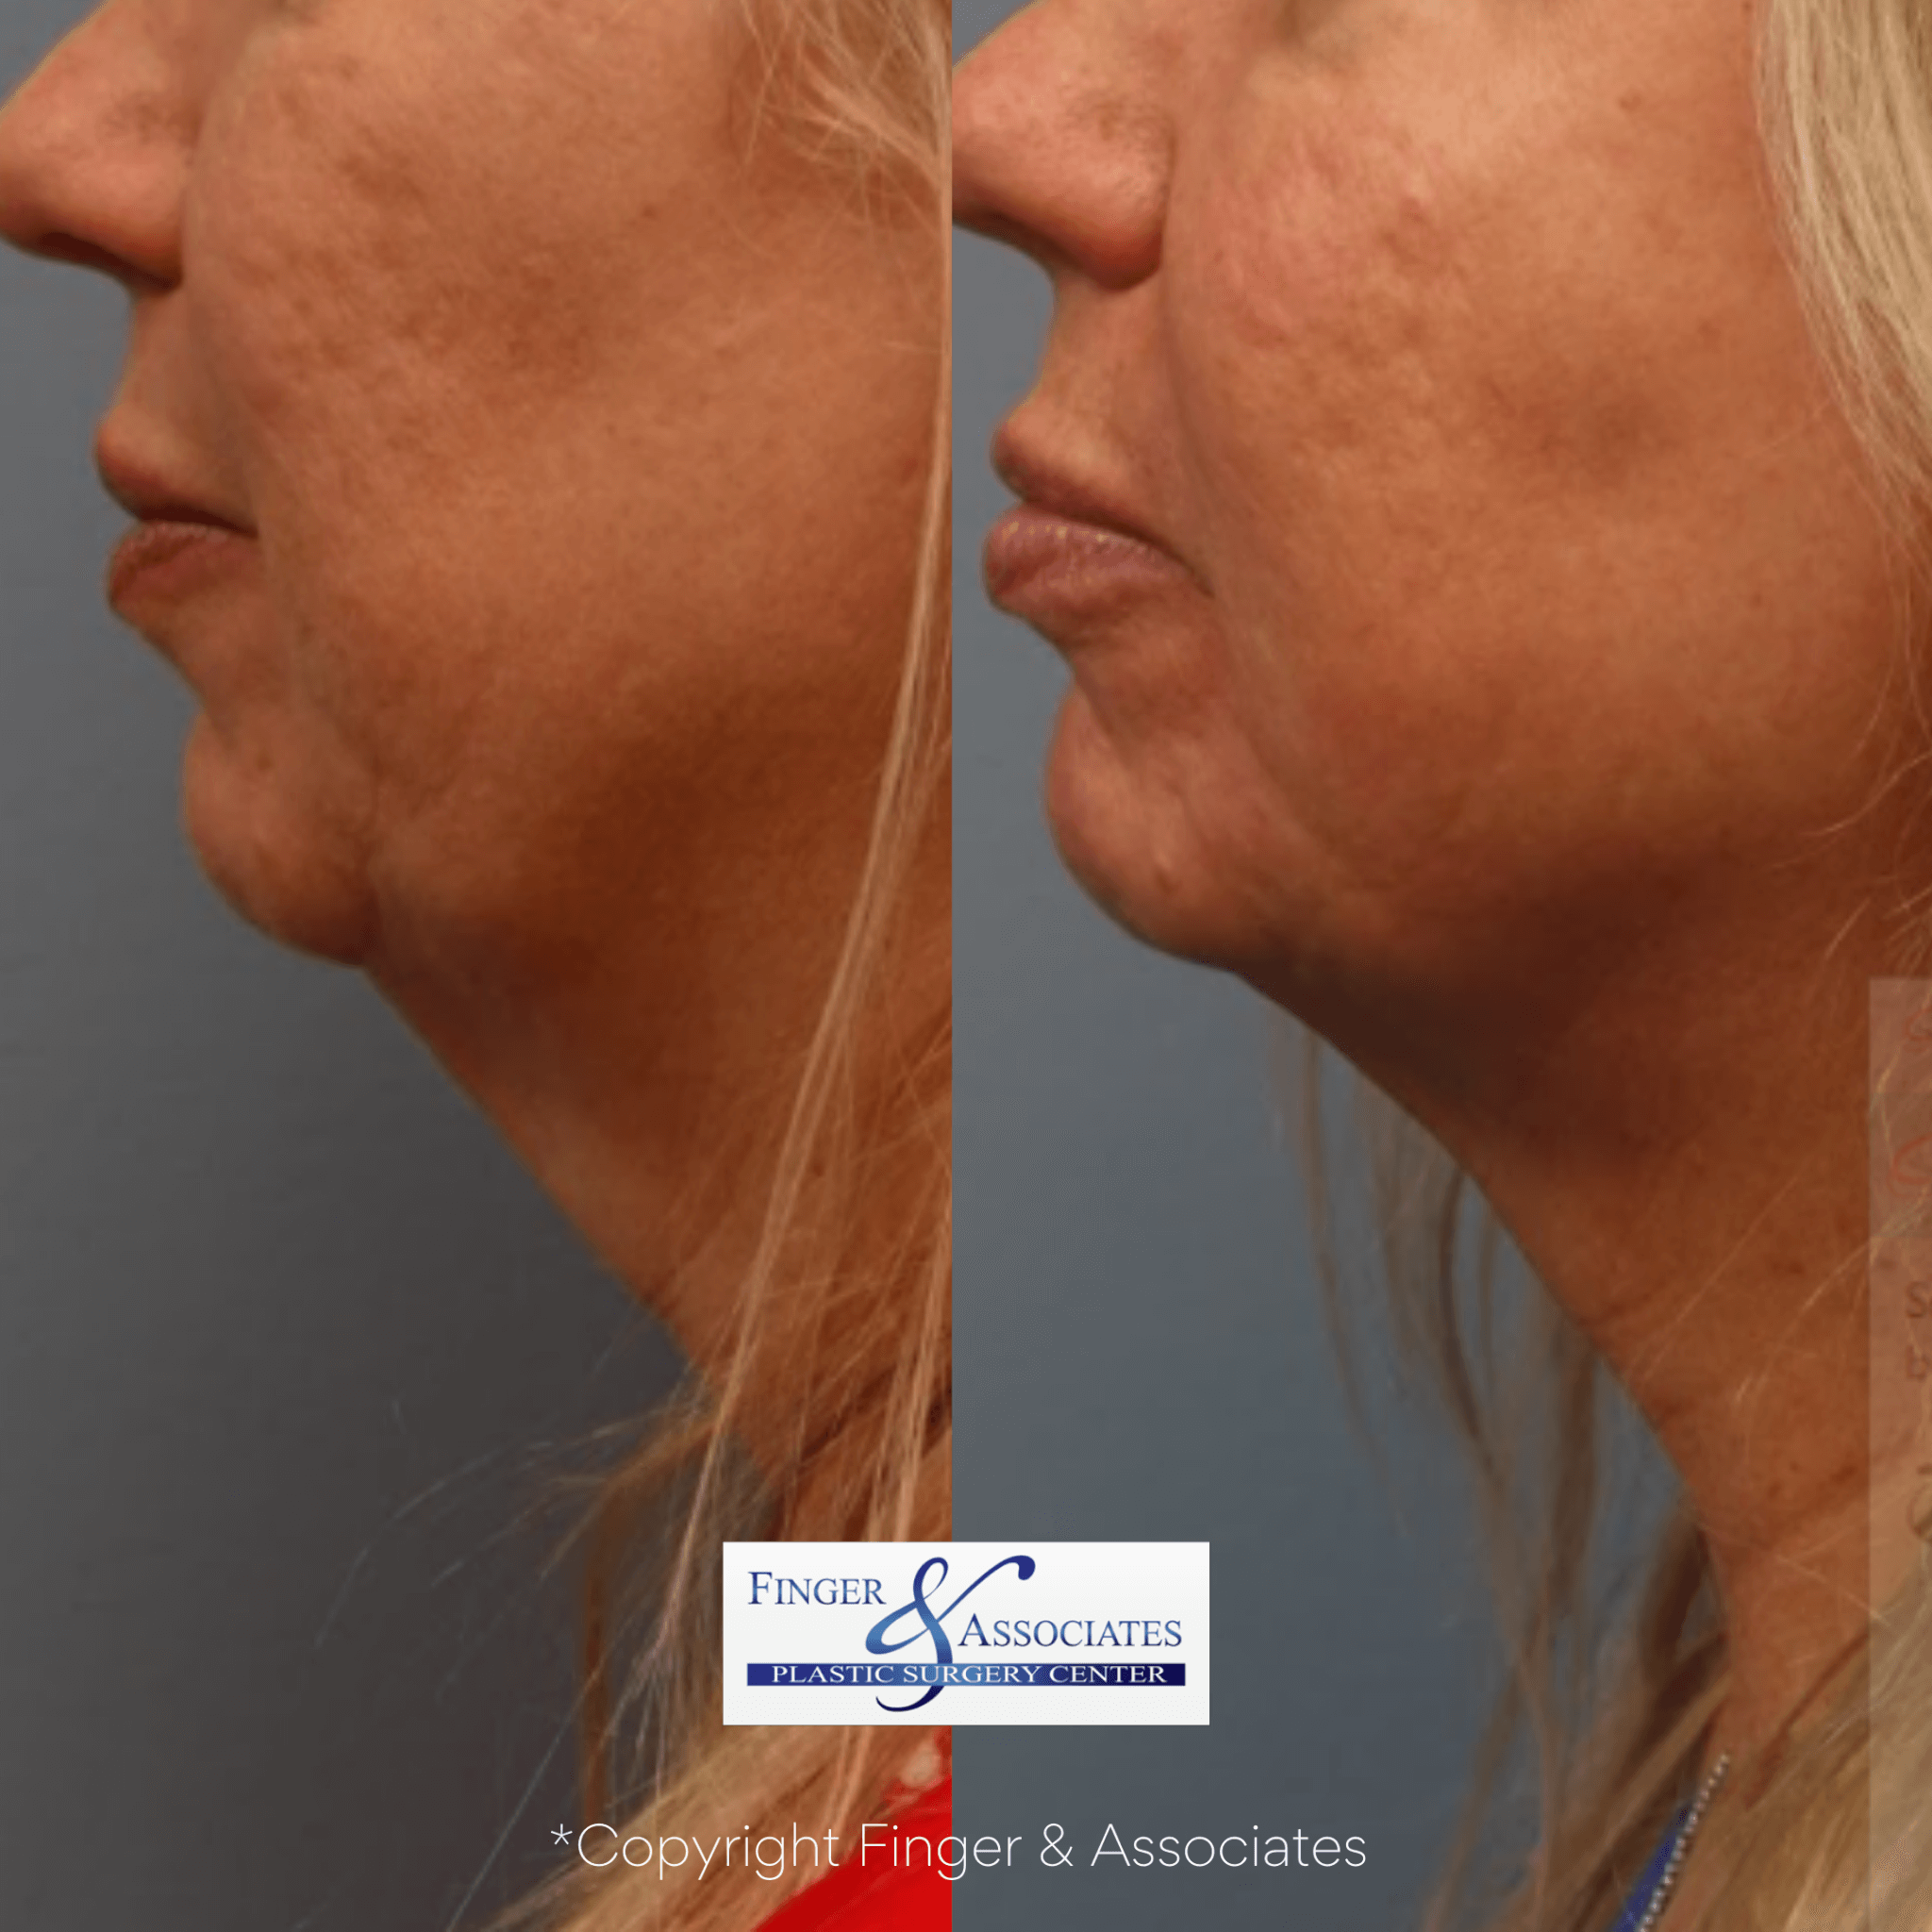 Before and after neck iposuction and thermitight for skin tightening